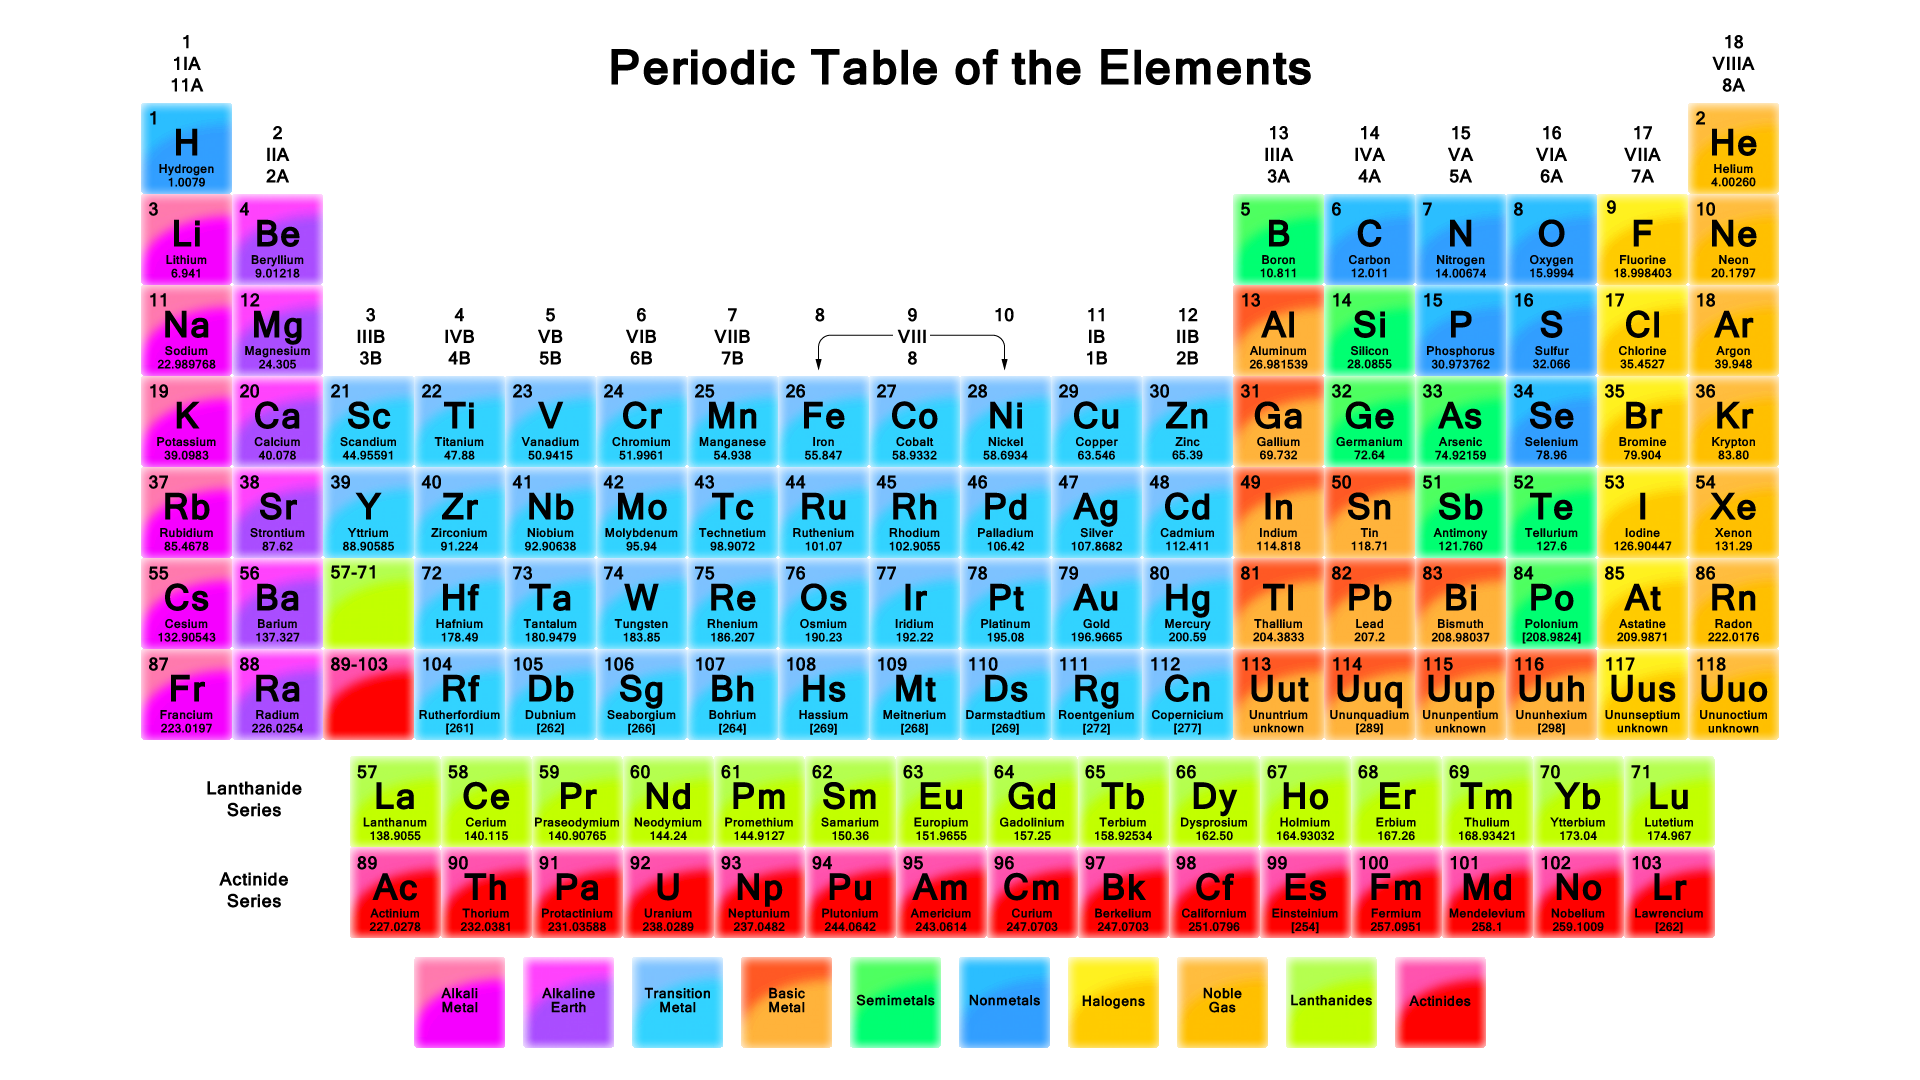 What are rare earth metals and why are they important norbert haupt rare earths periodictable urtaz Gallery